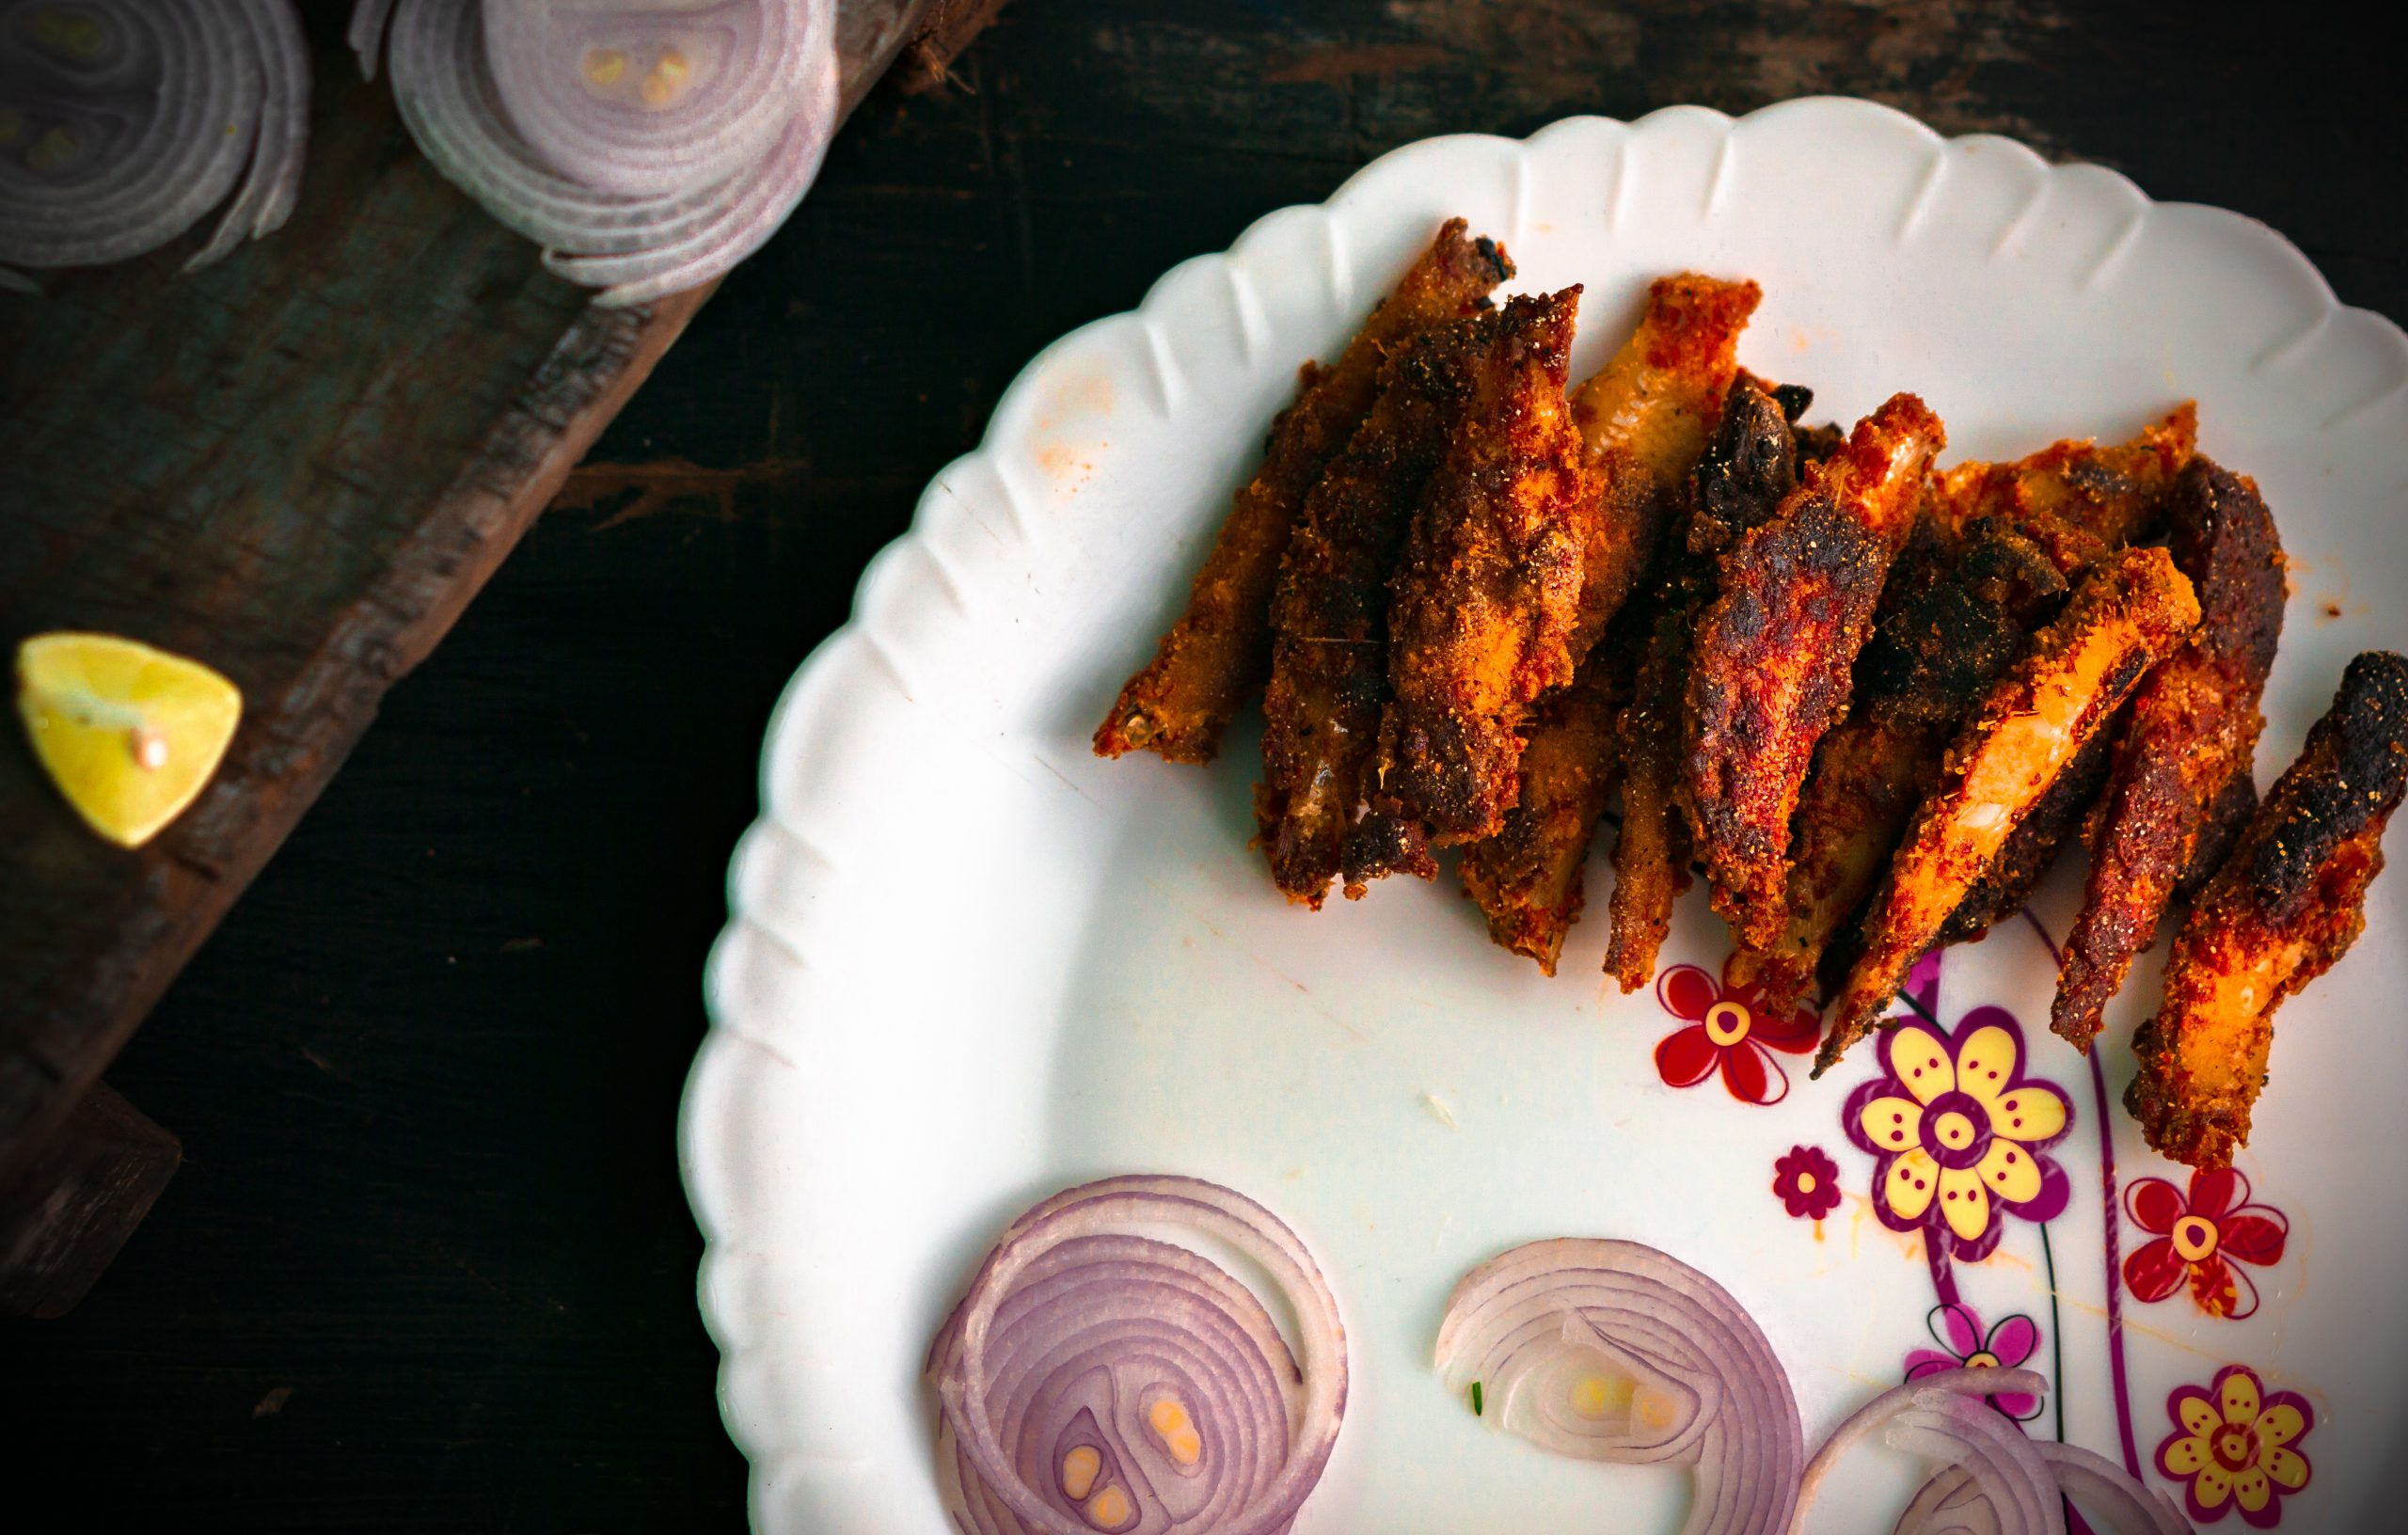 Fried fish with onions.